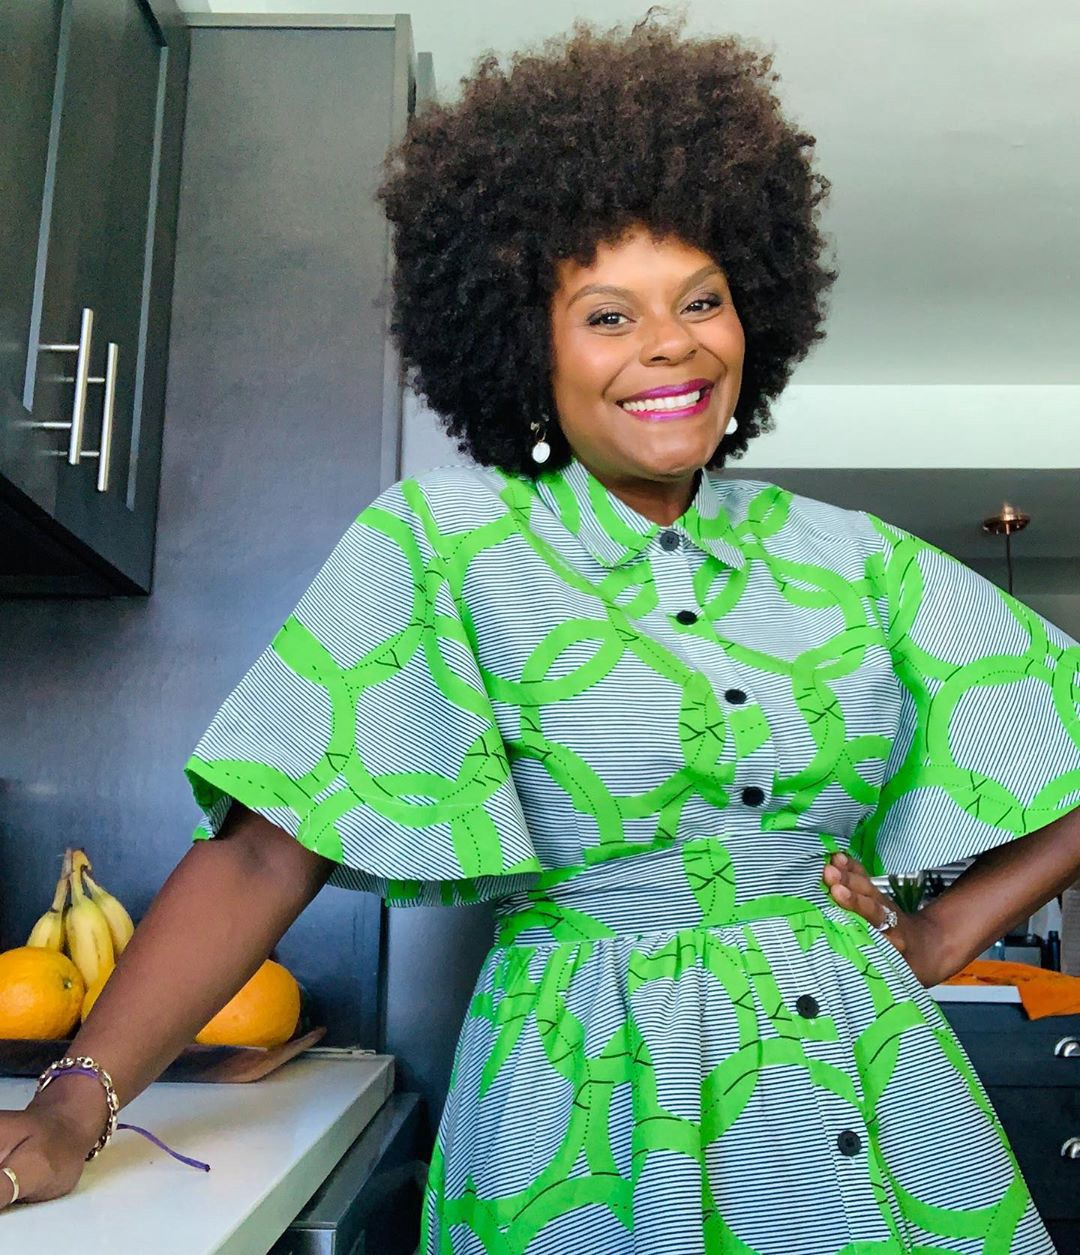 Tabitha Brown posing in a kitchen while wearing a bold graphic print dress.